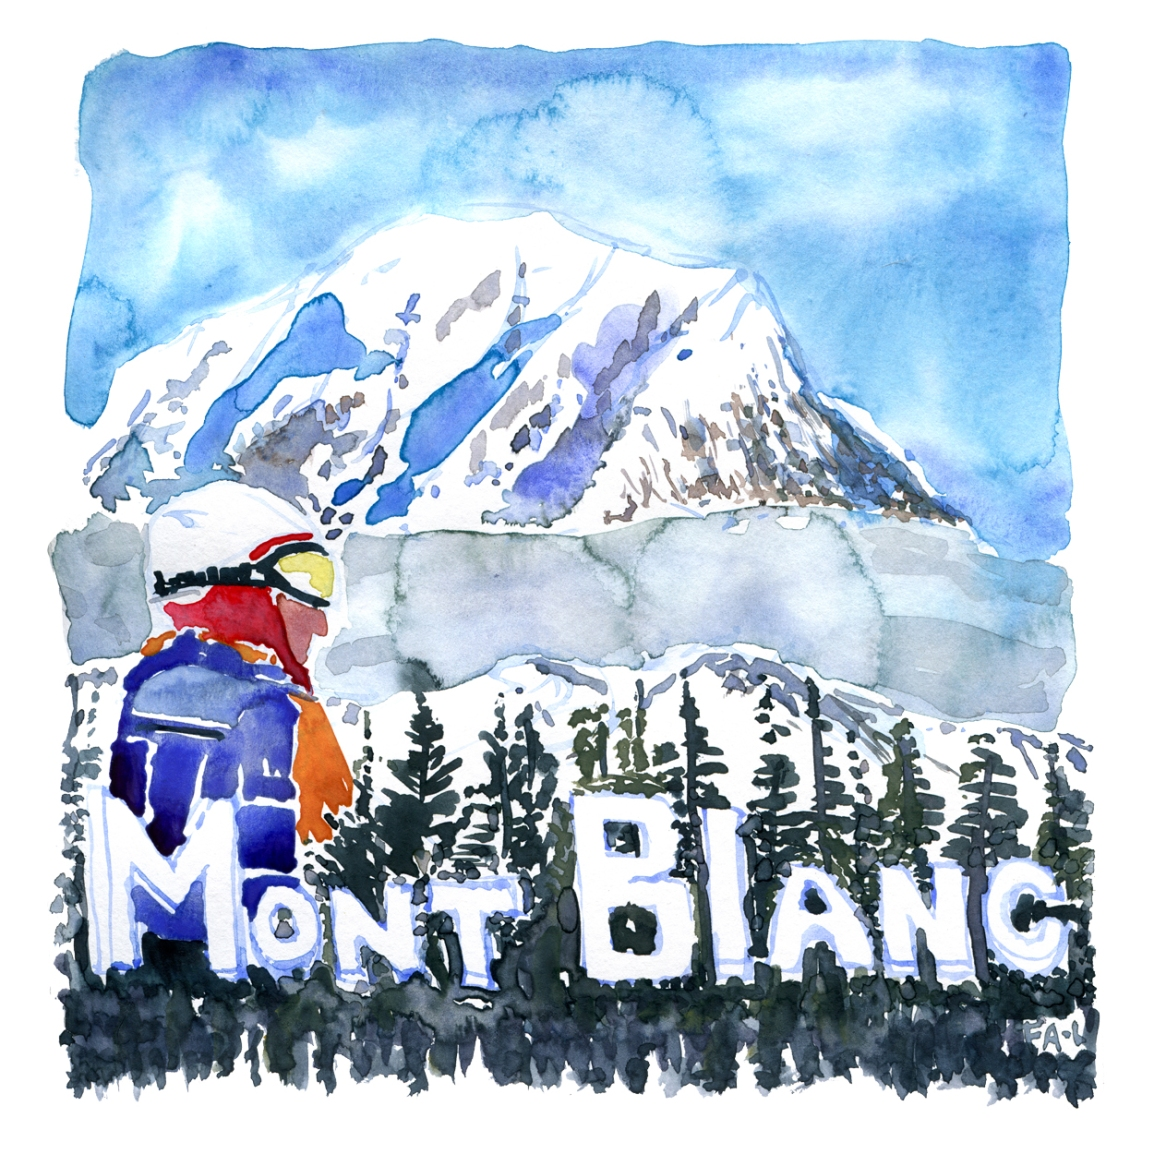 Watercolor of tour de Mont Blanc, painting by Frits Ahlefeldt